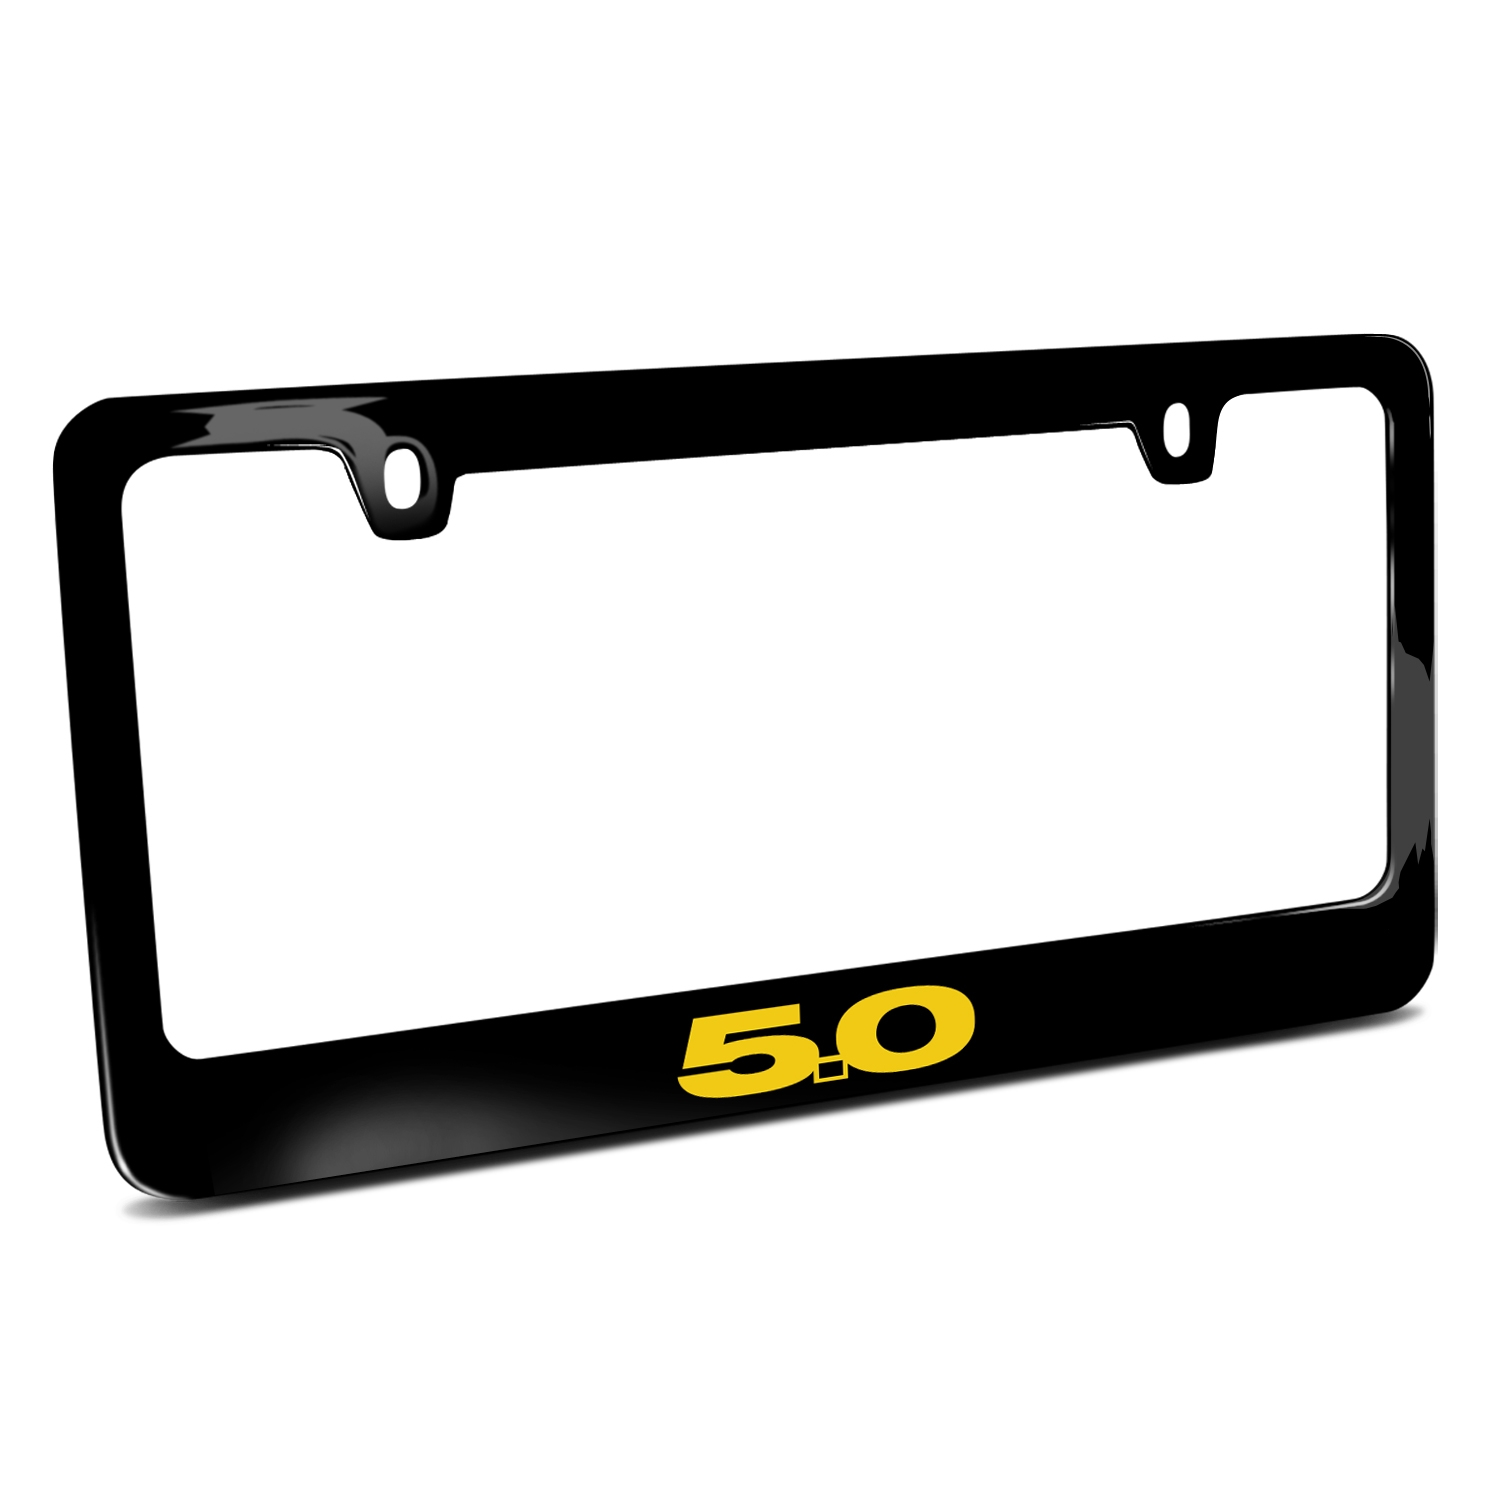 Ford Mustang 5.0 in Yellow Black Metal License Plate Frame